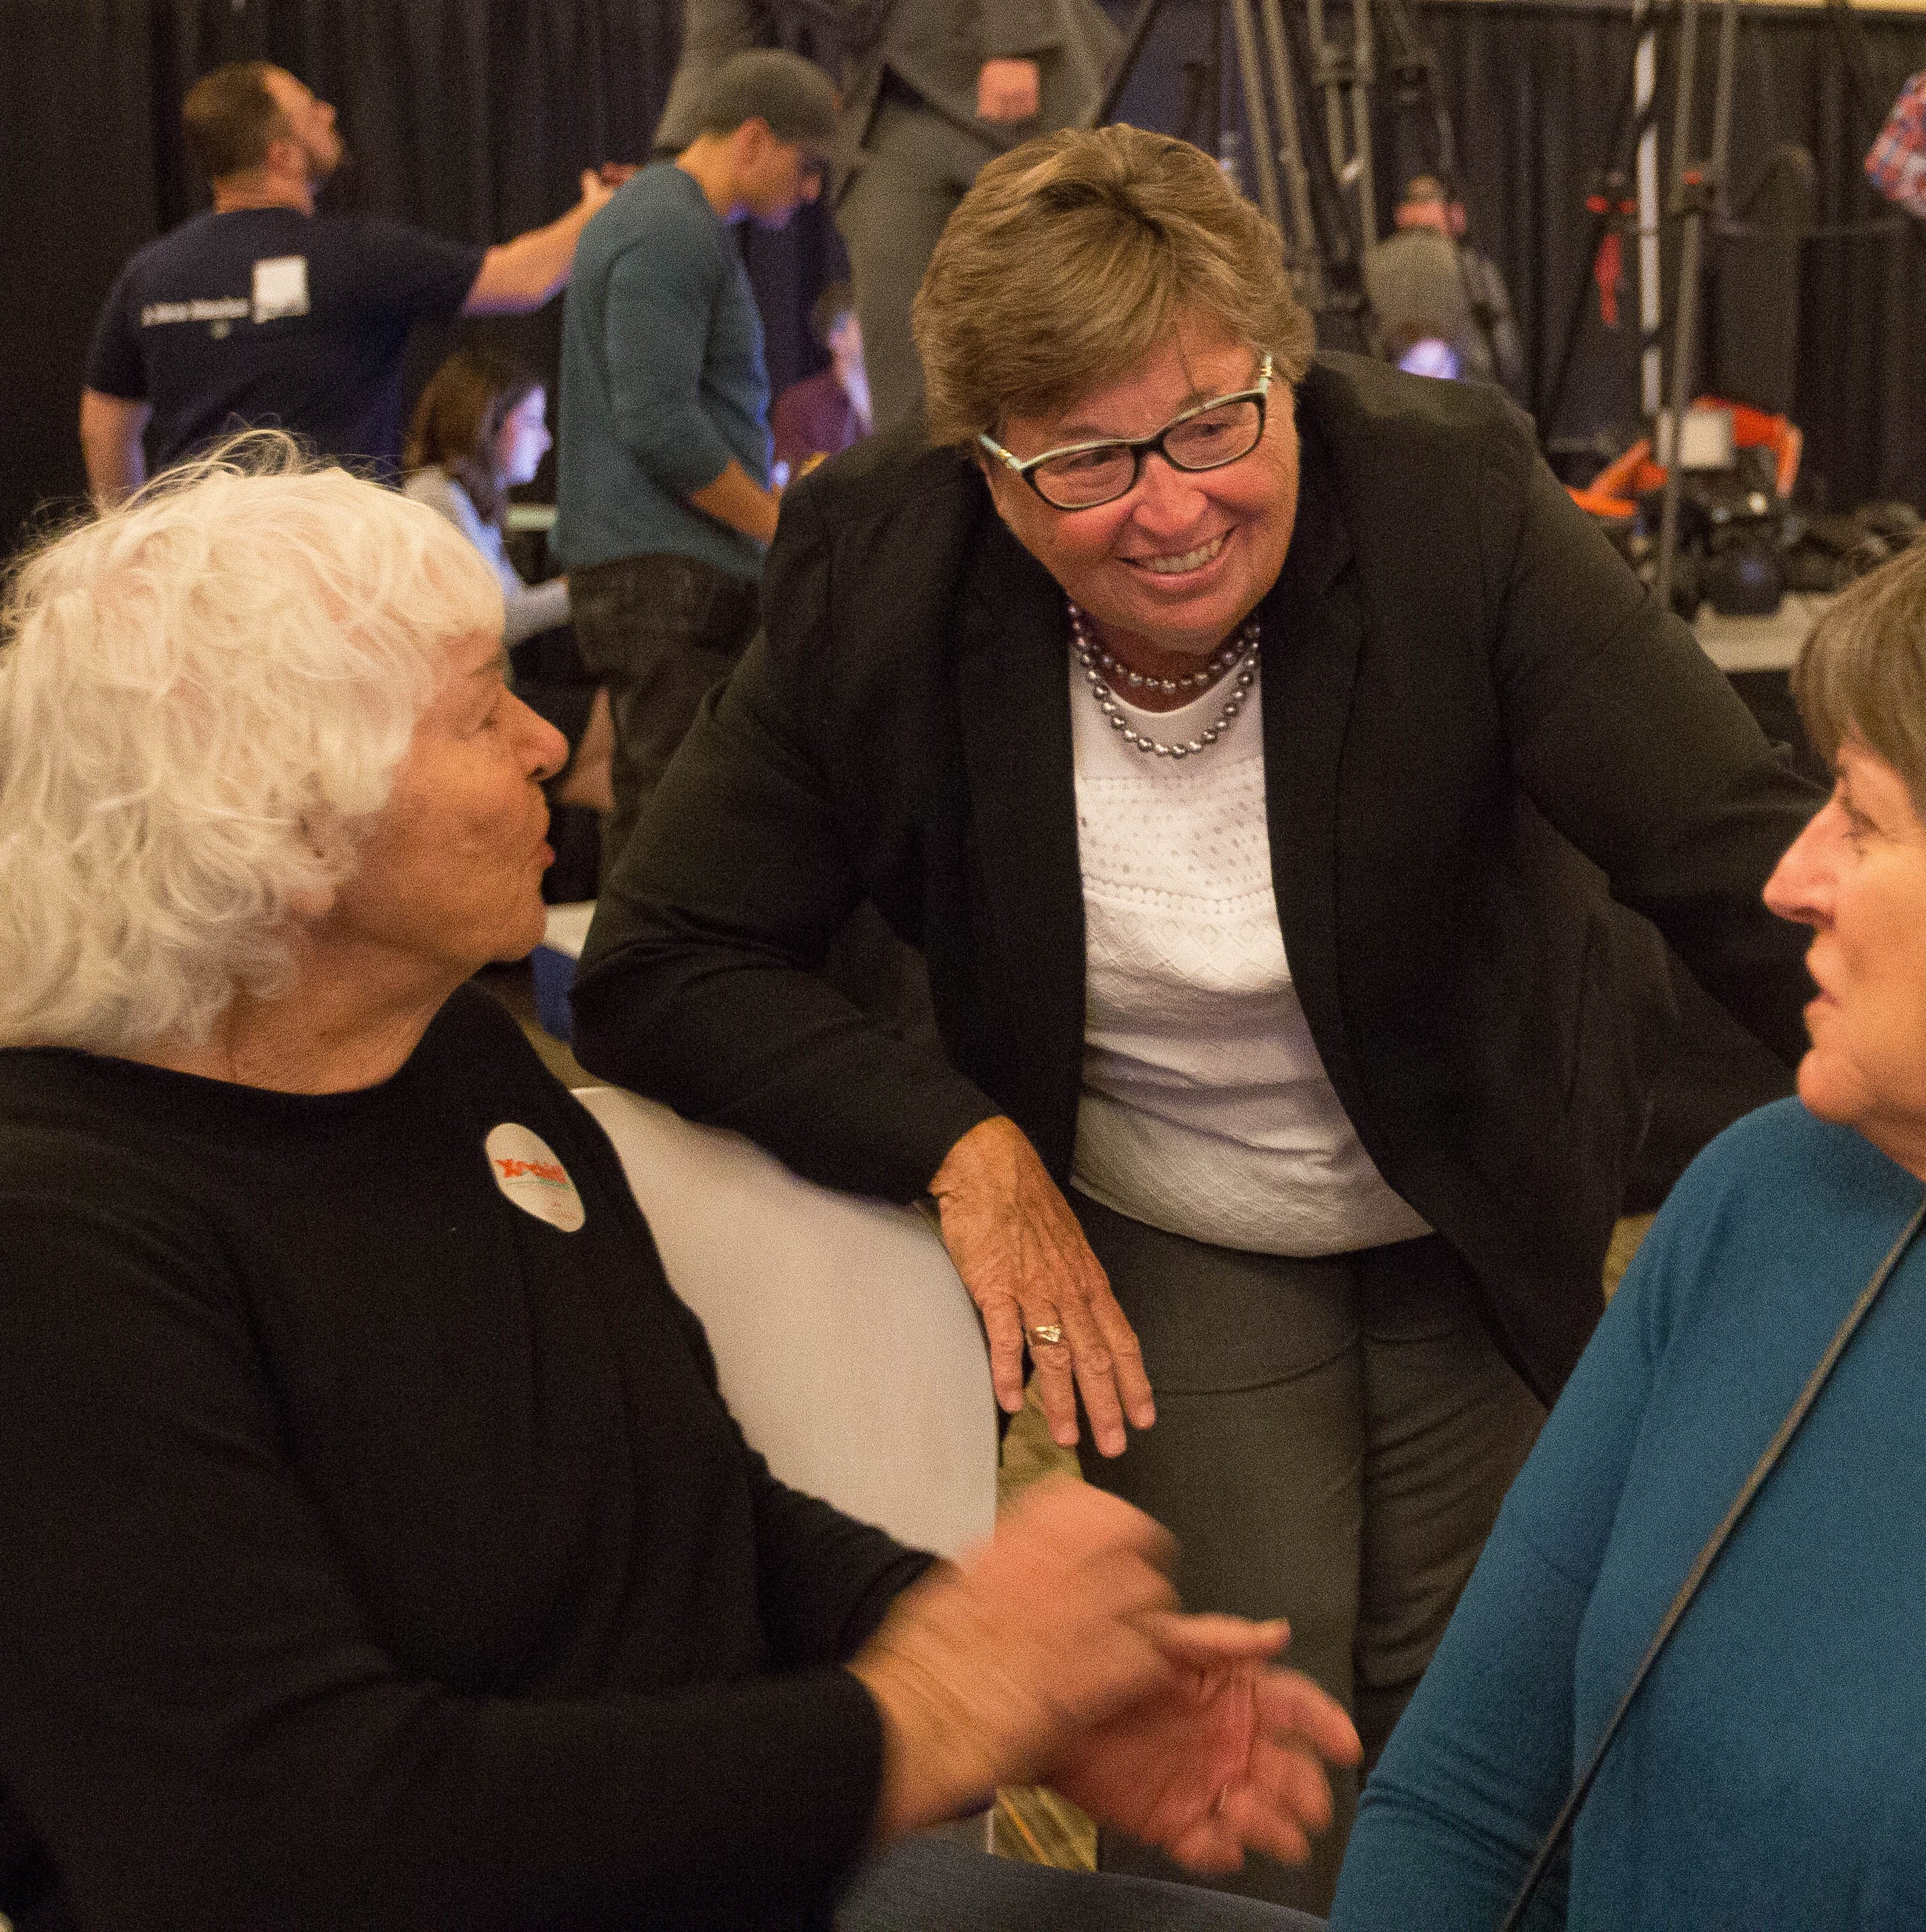 Kim Stewart will be first openly gay sheriff in state history, first woman sheriff in county